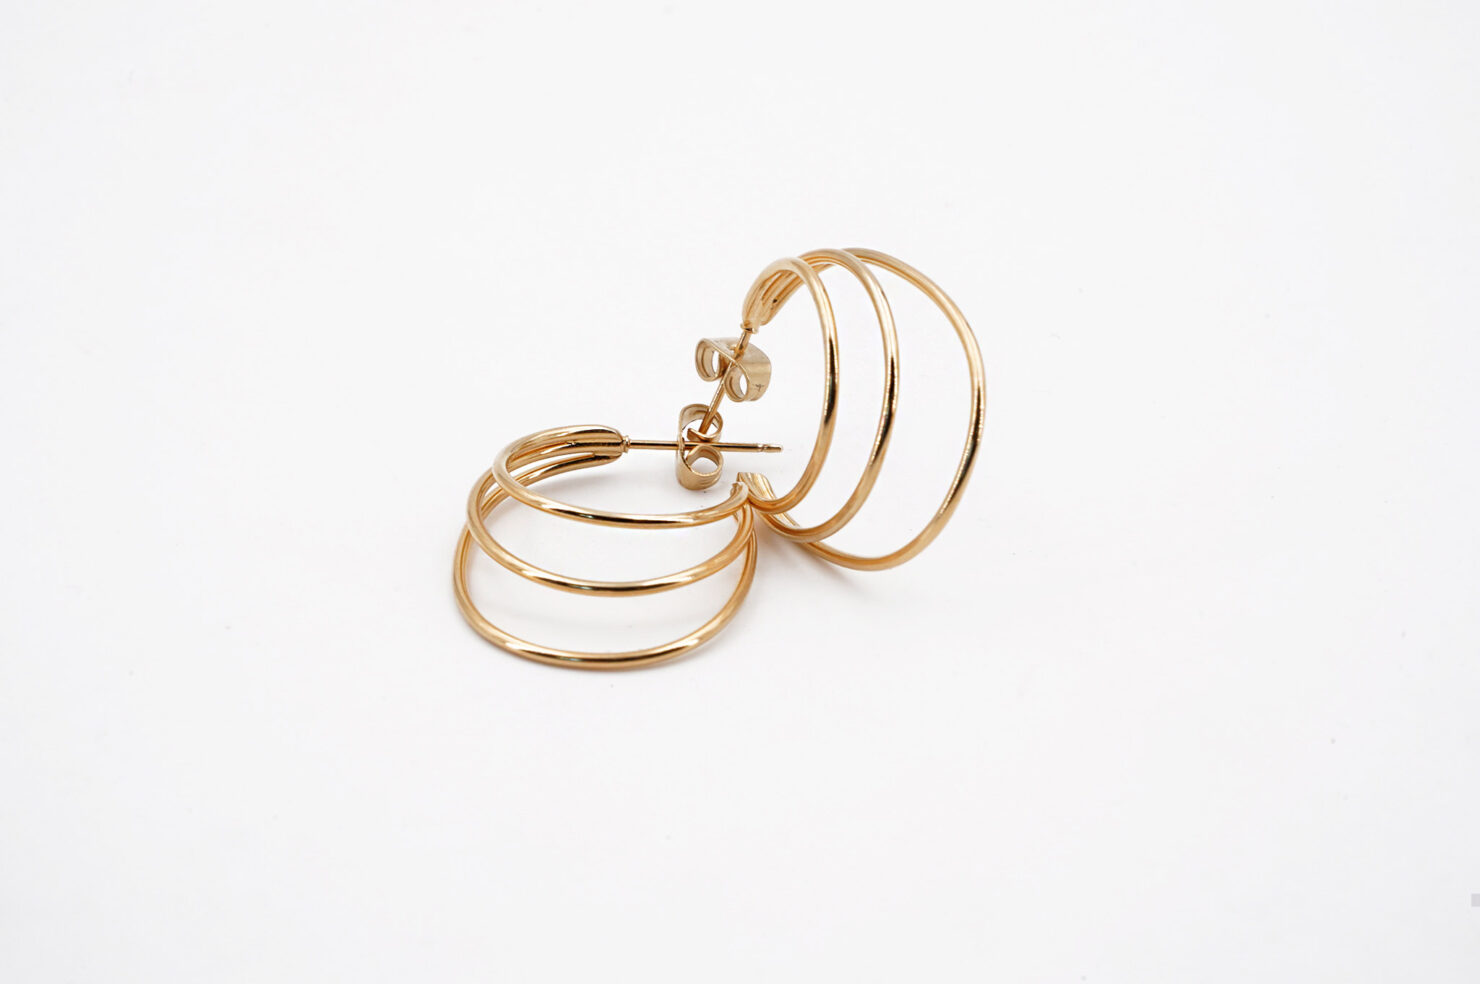 TURANDOT HOOP EARRINGS SMALL - MEDICINE DOUCE